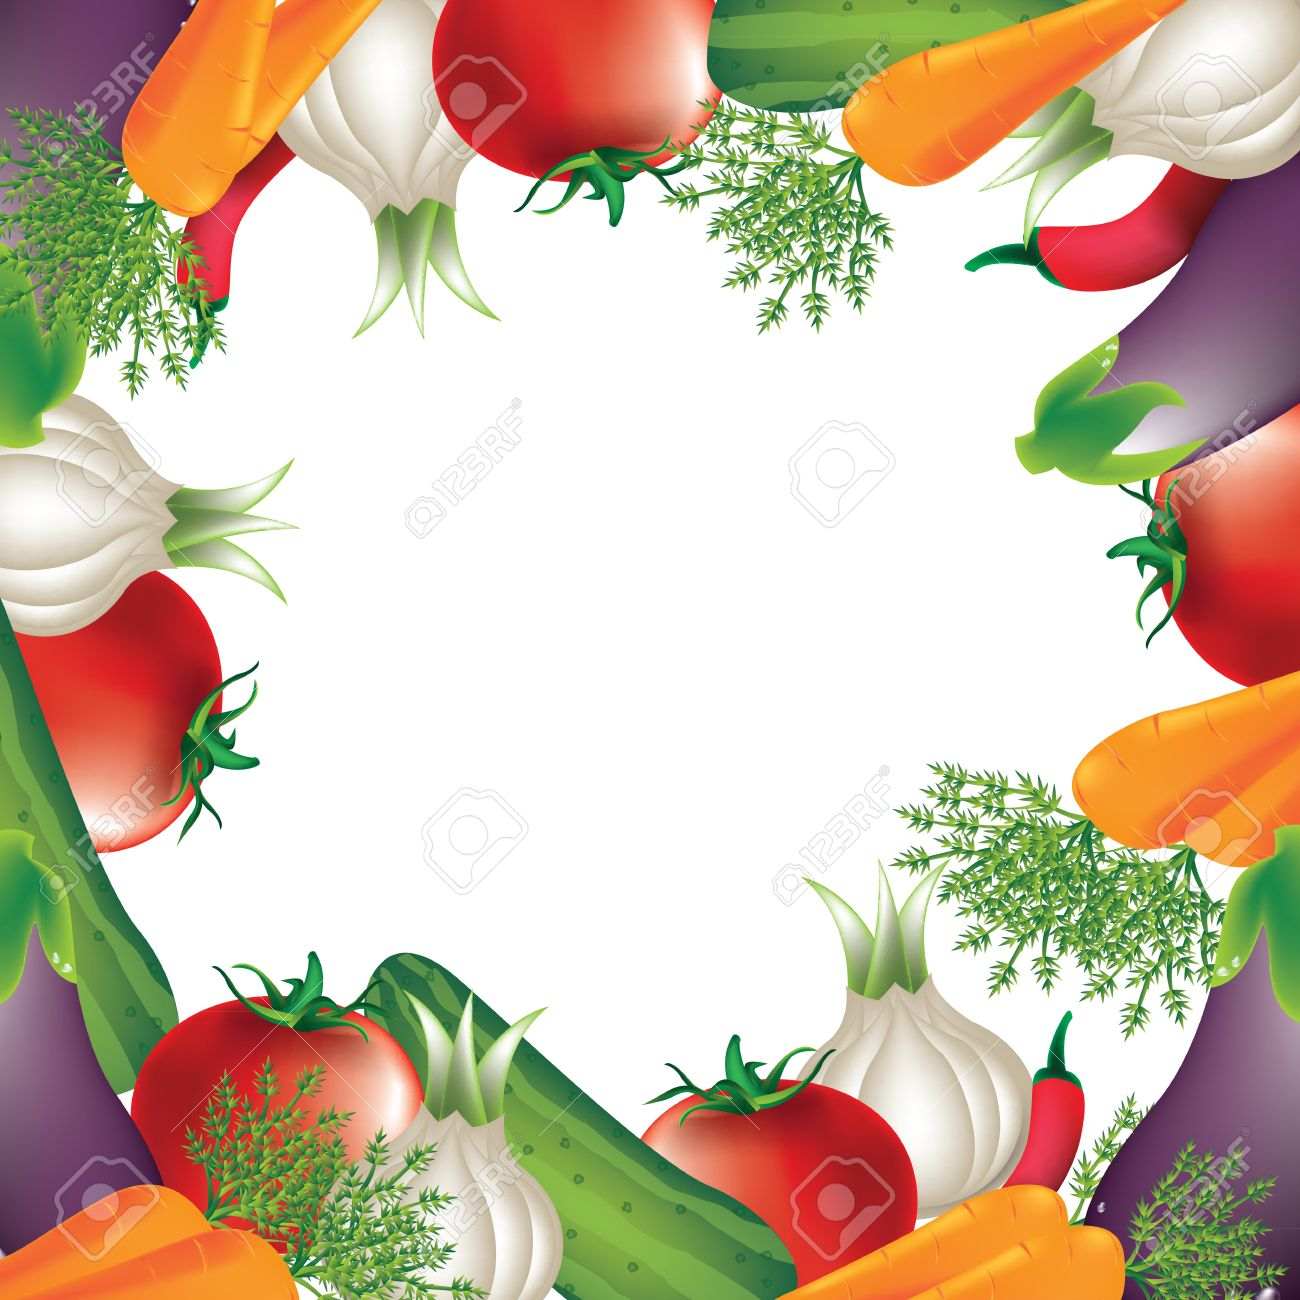 Tomato,carrot,onion, Over White Background Royalty Free Cliparts.